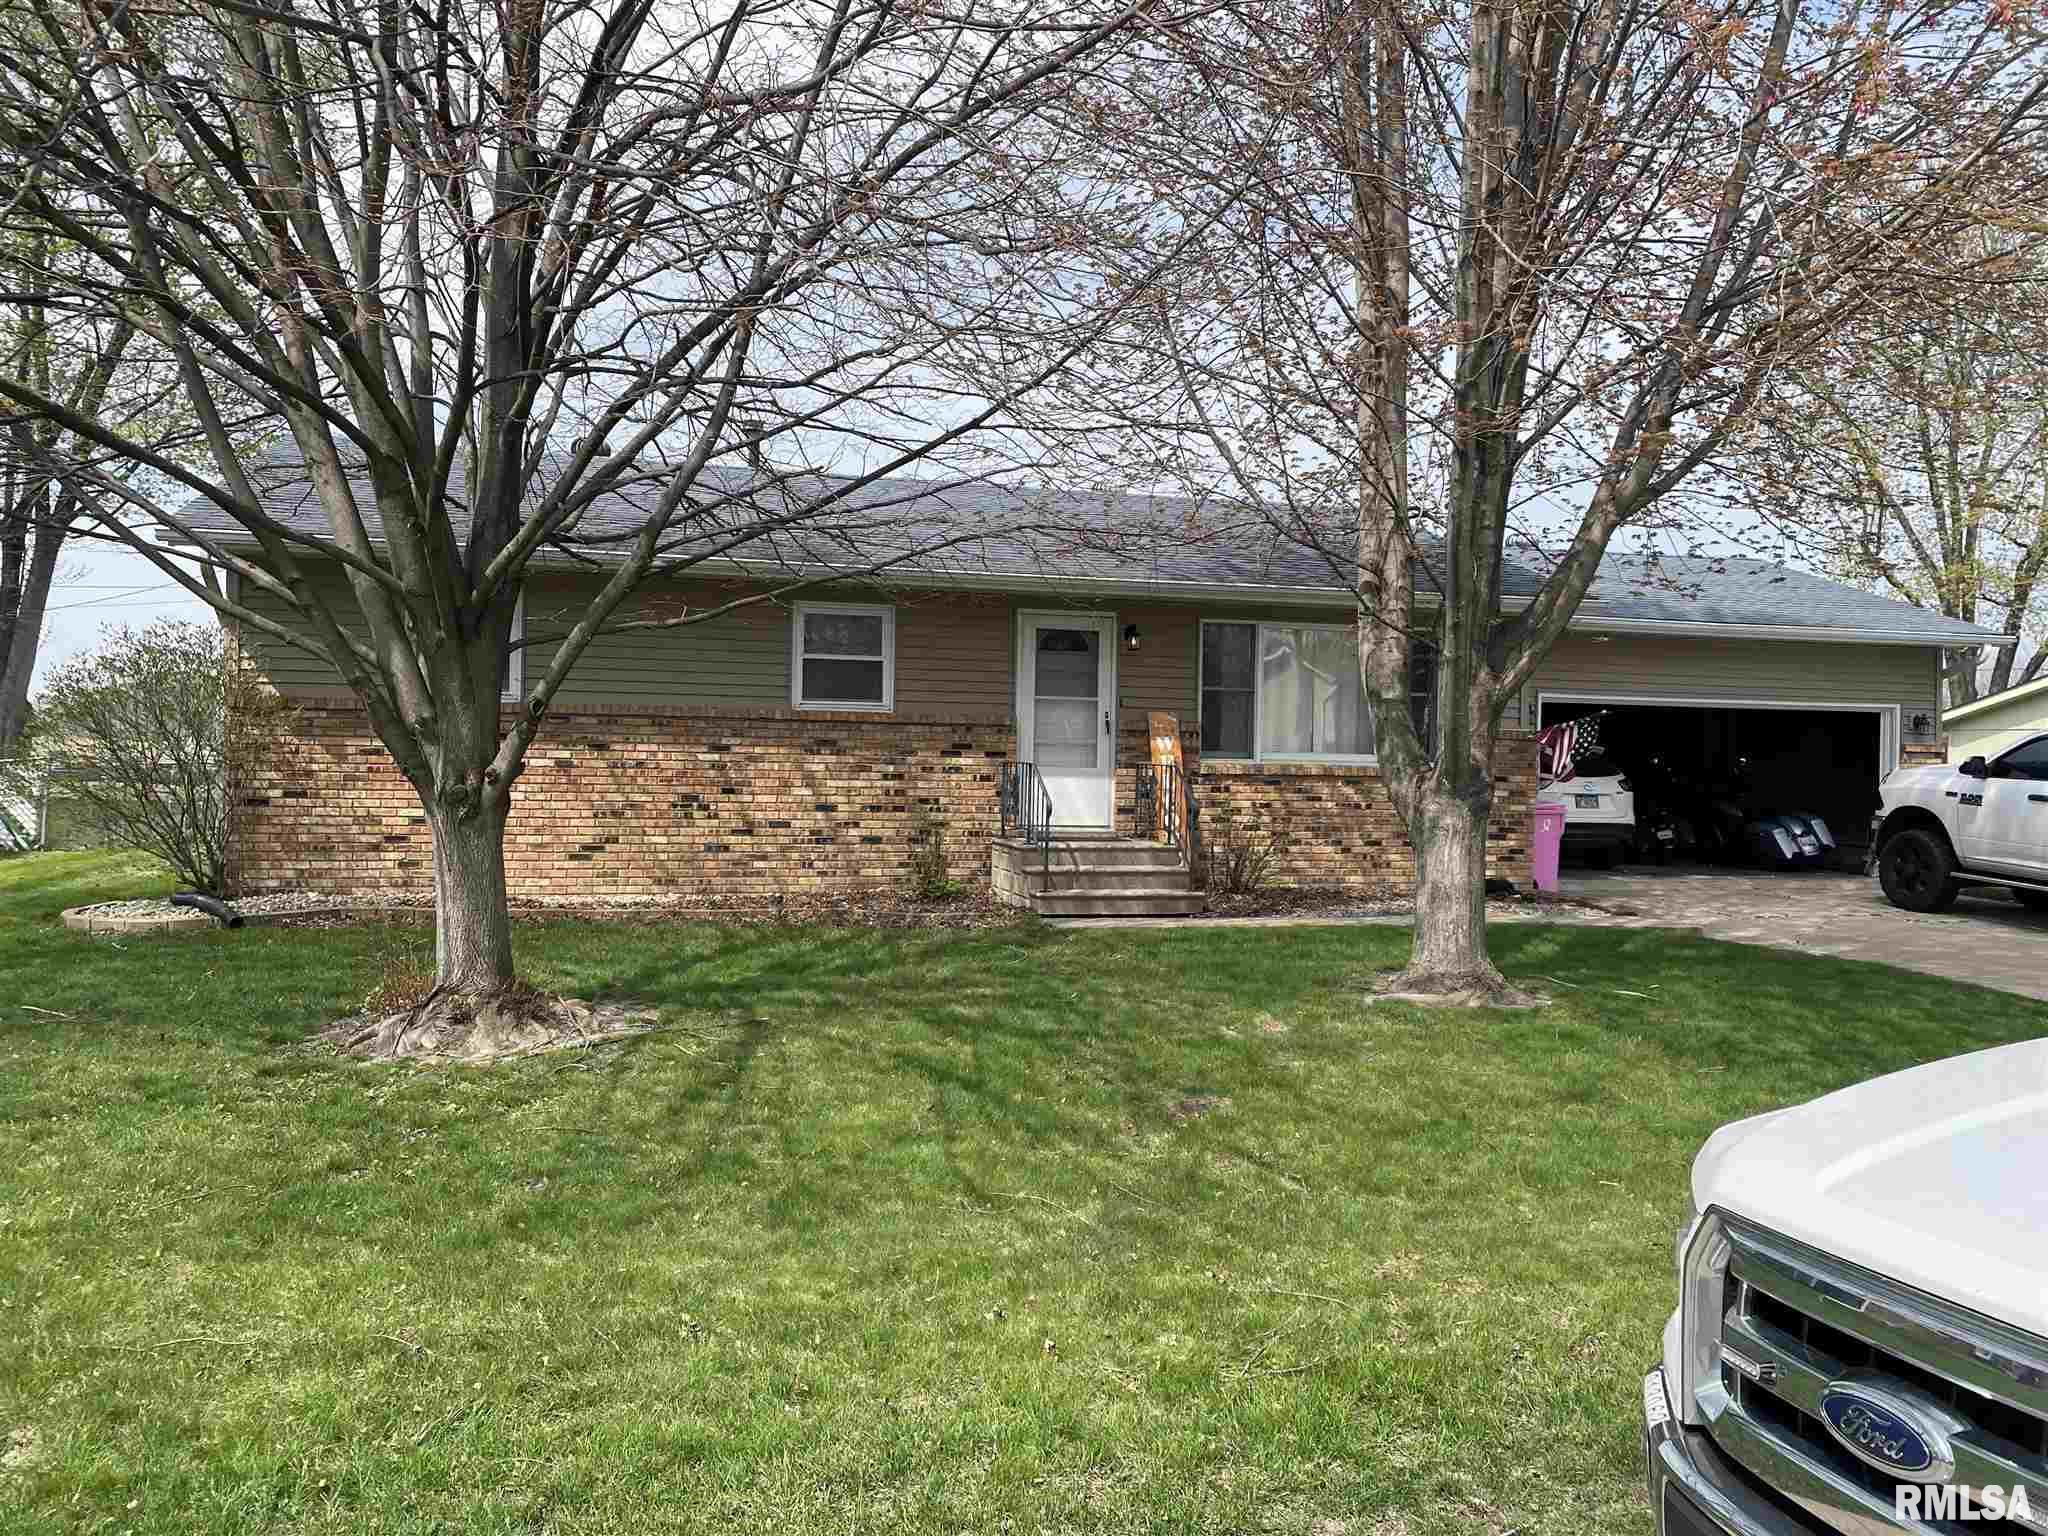 469 WILSHIRE Property Photo - Colona, IL real estate listing